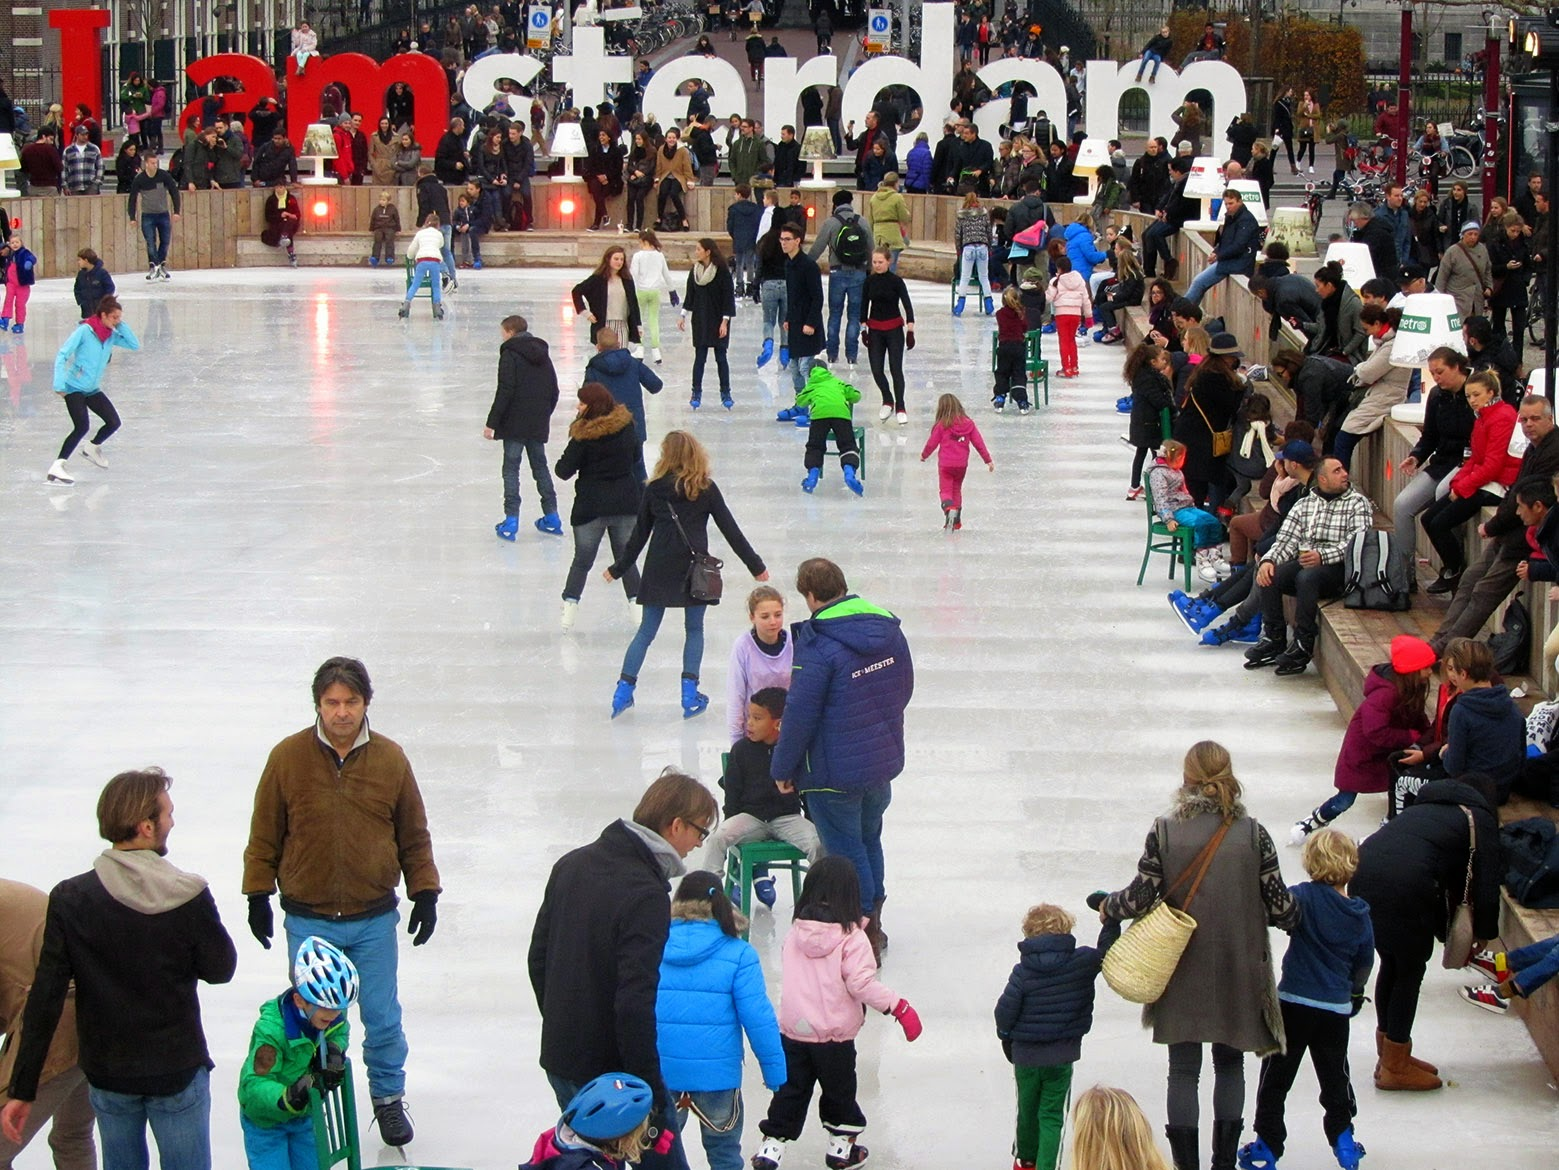 Iamsterdam with ice rink